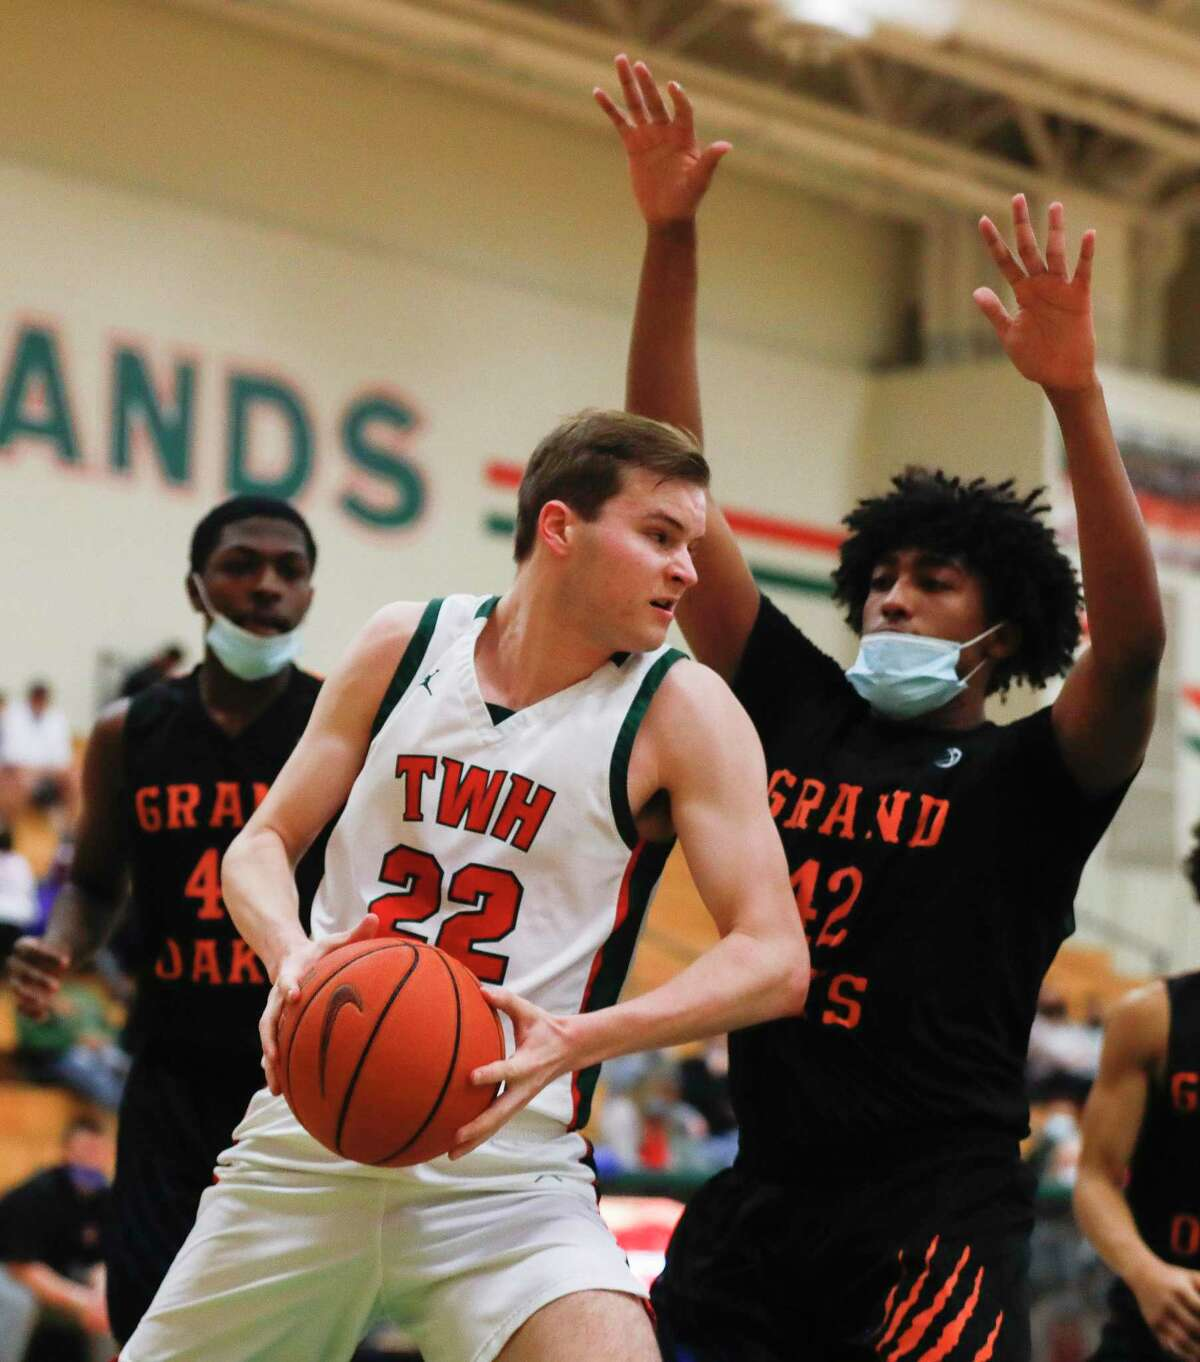 The Woodlands center Brock Luechtefeld (22) ,shown here earlier this season, had 22 points against Willis Friday night.